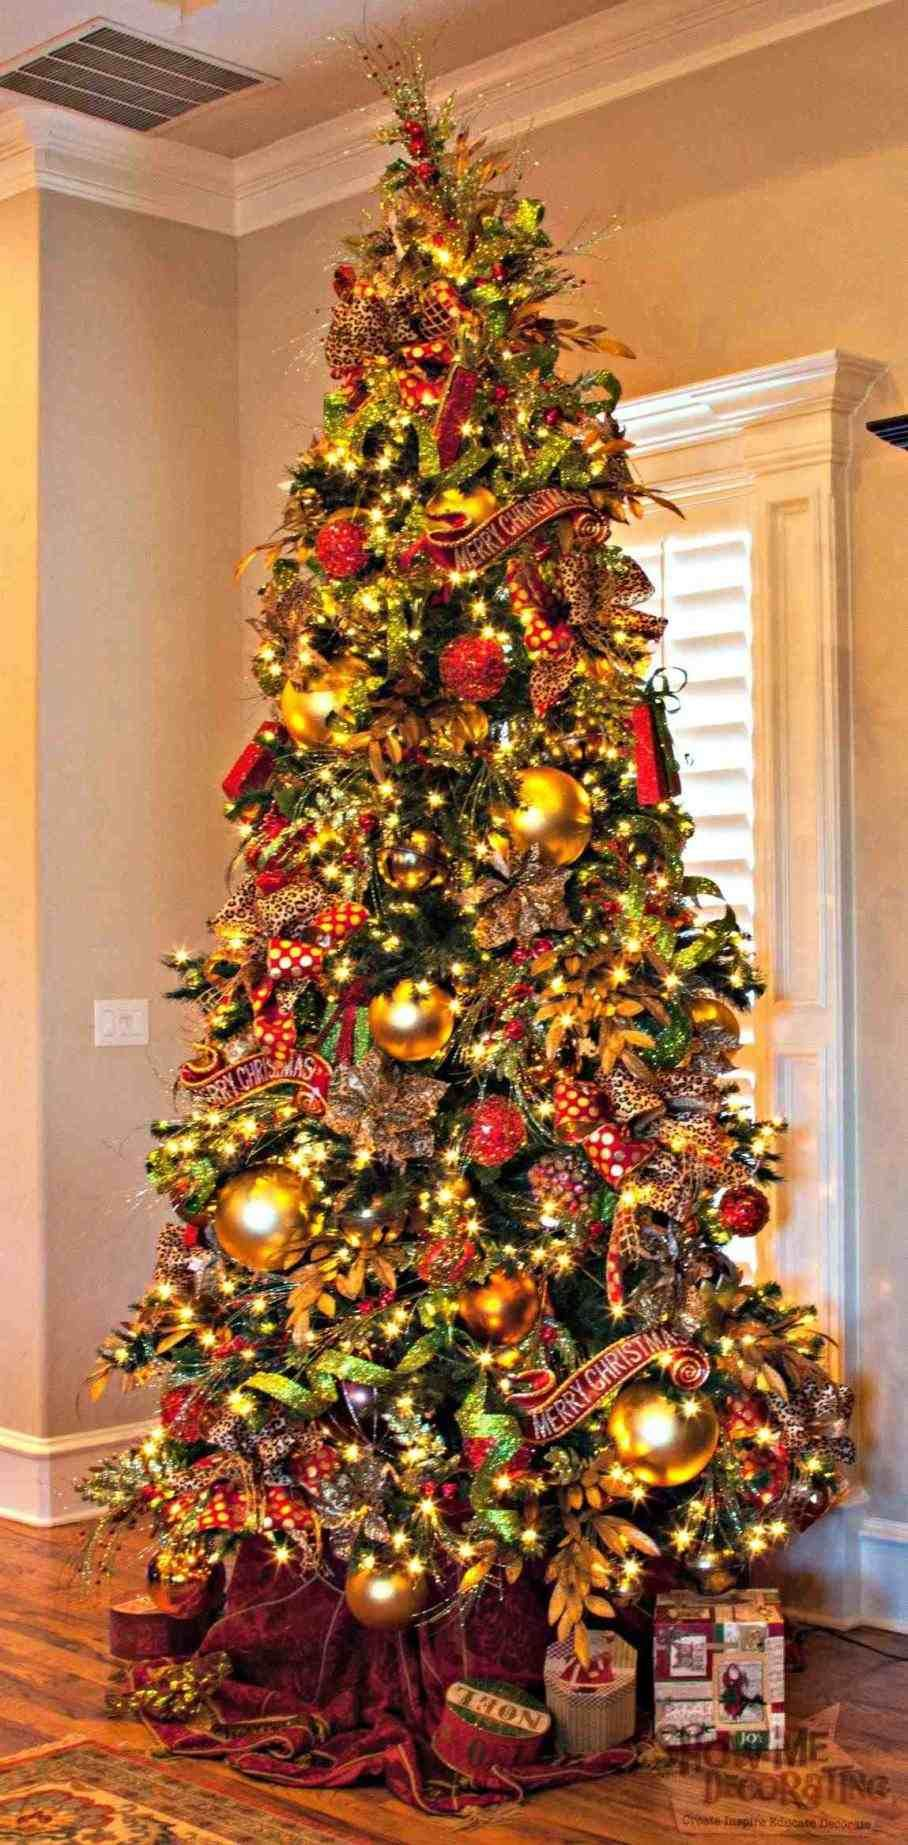 christmas tree new post christmas tree ideas red and silver - Christmas Tree Decorating Ideas Red And Silver